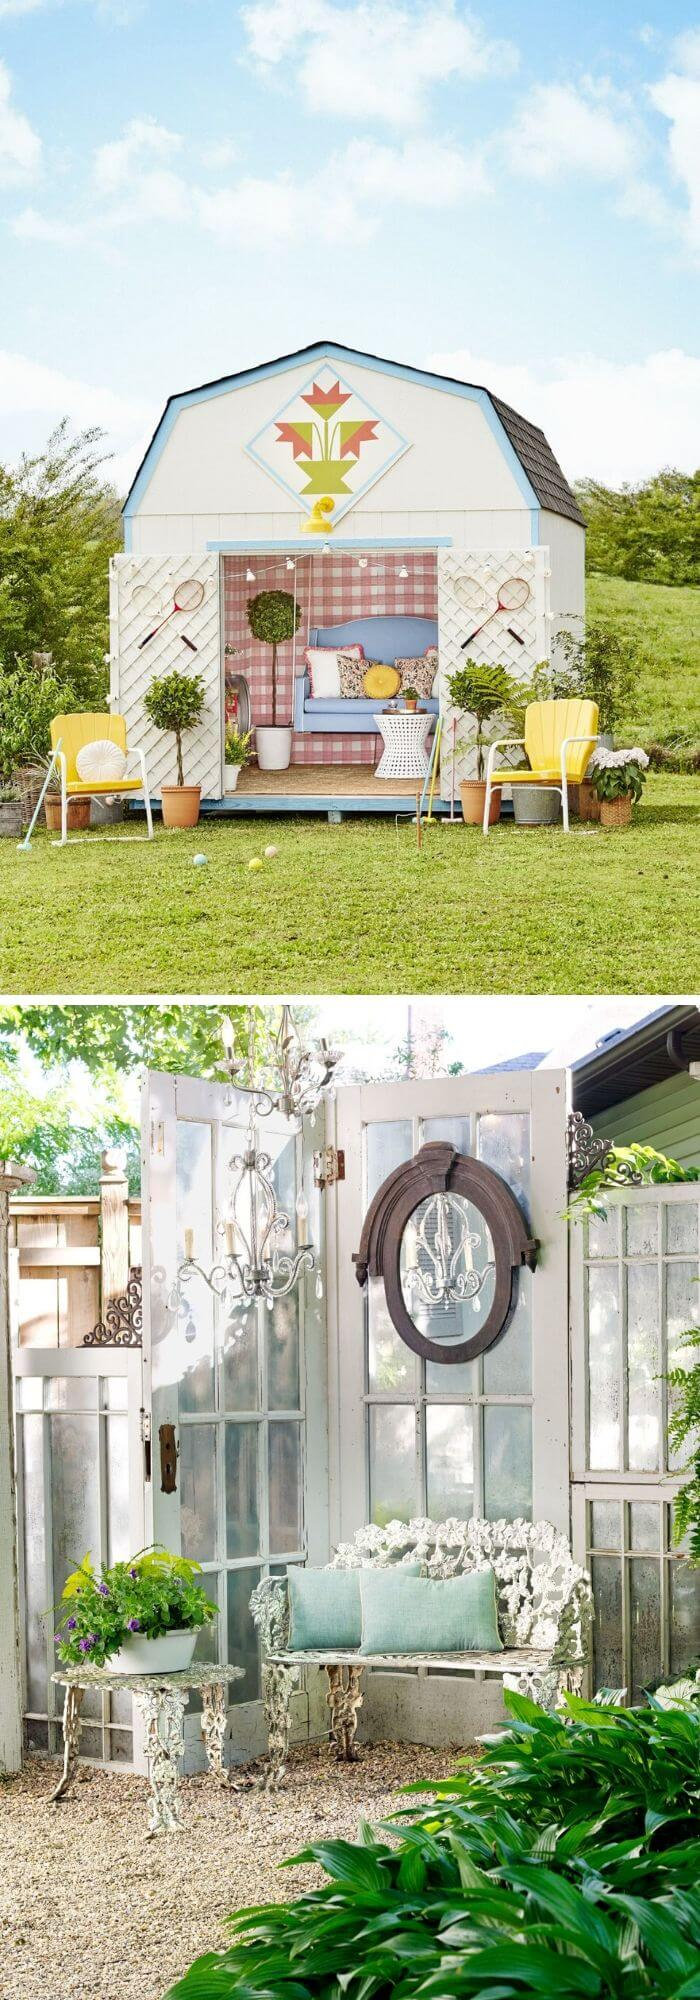 A Backyard with a Chic Shed